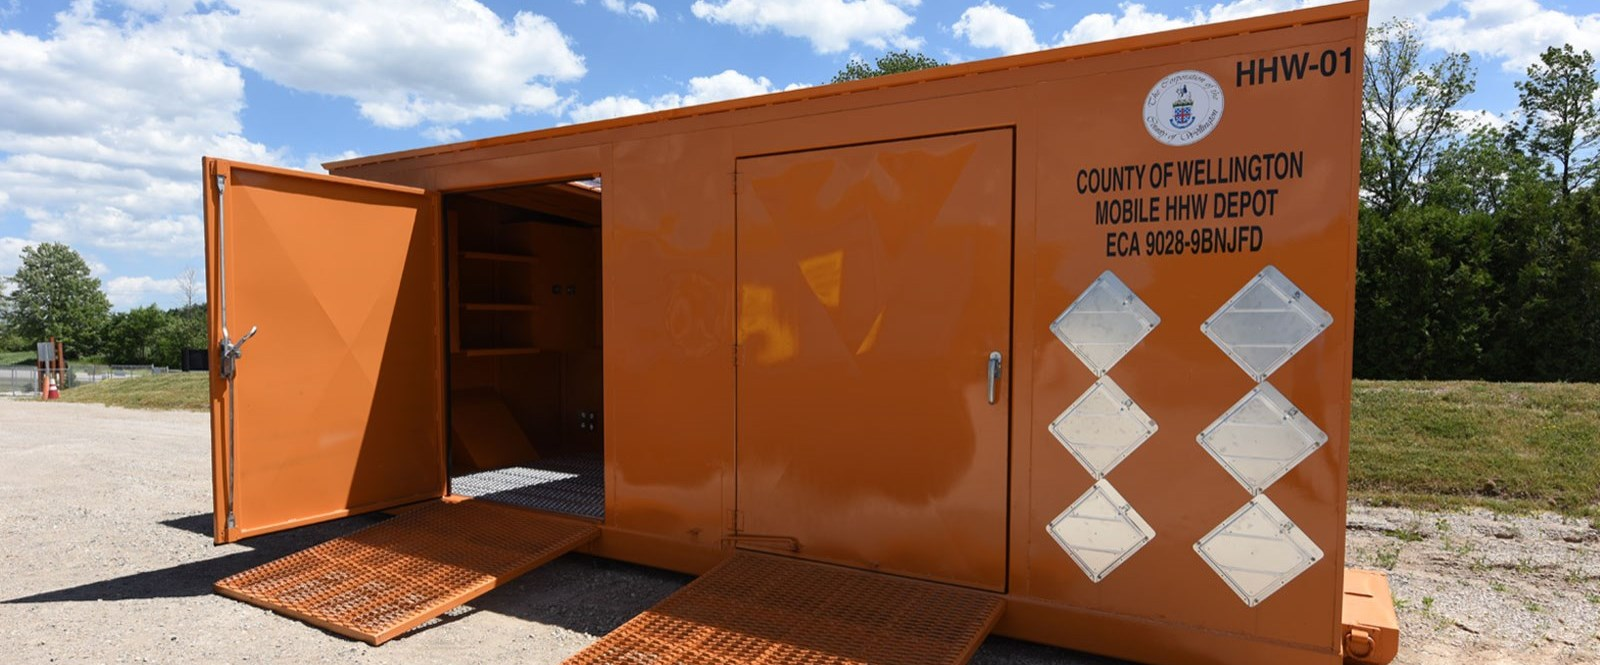 large orange steel container